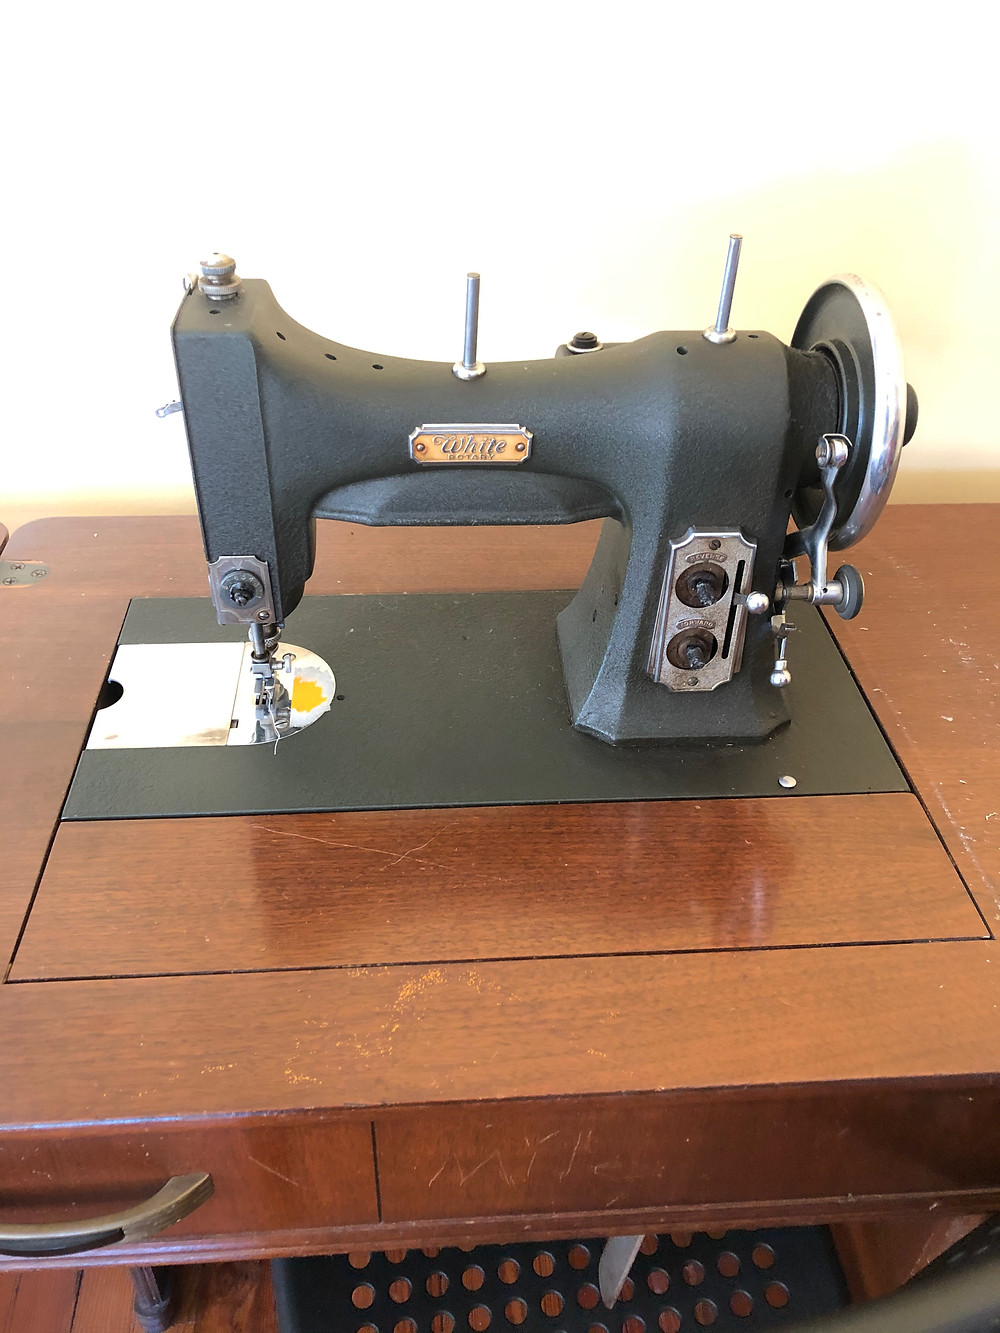 Vintage White Sewing Machine | How to Set up a Sewing Room with Hartford Stitch